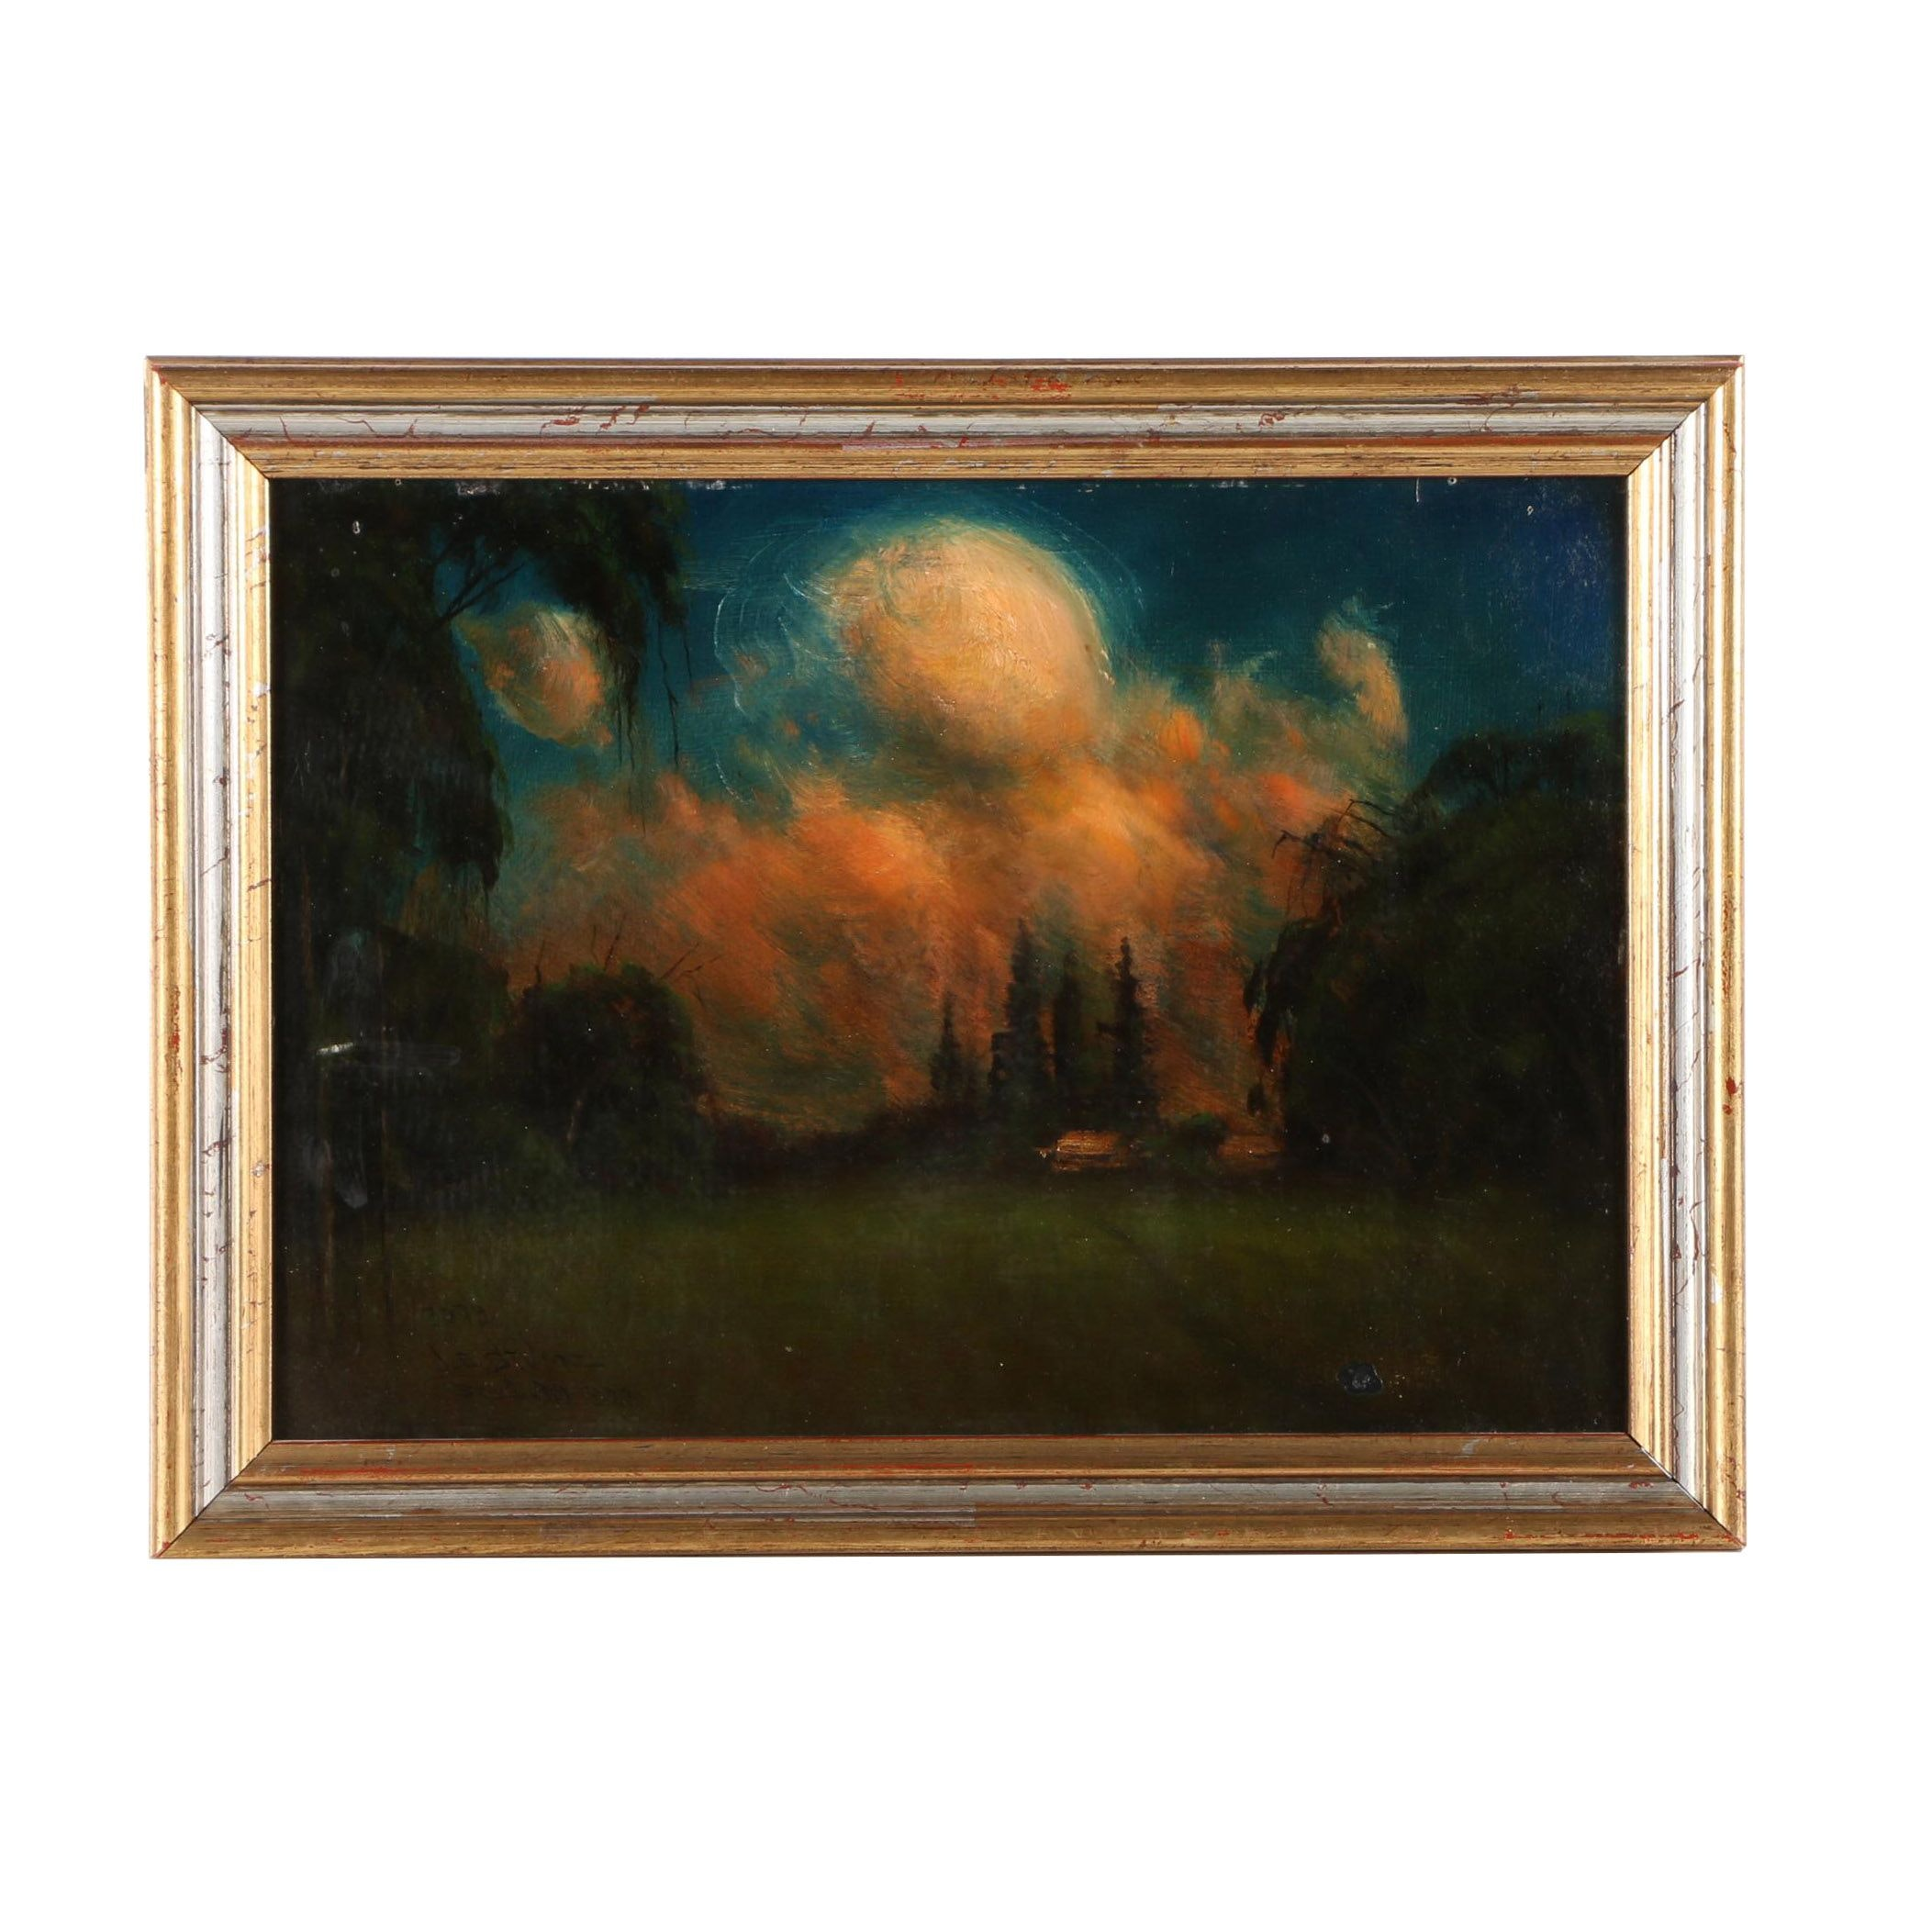 1923 James Everett Stuart Oil on Board of Landscape Near San Jose